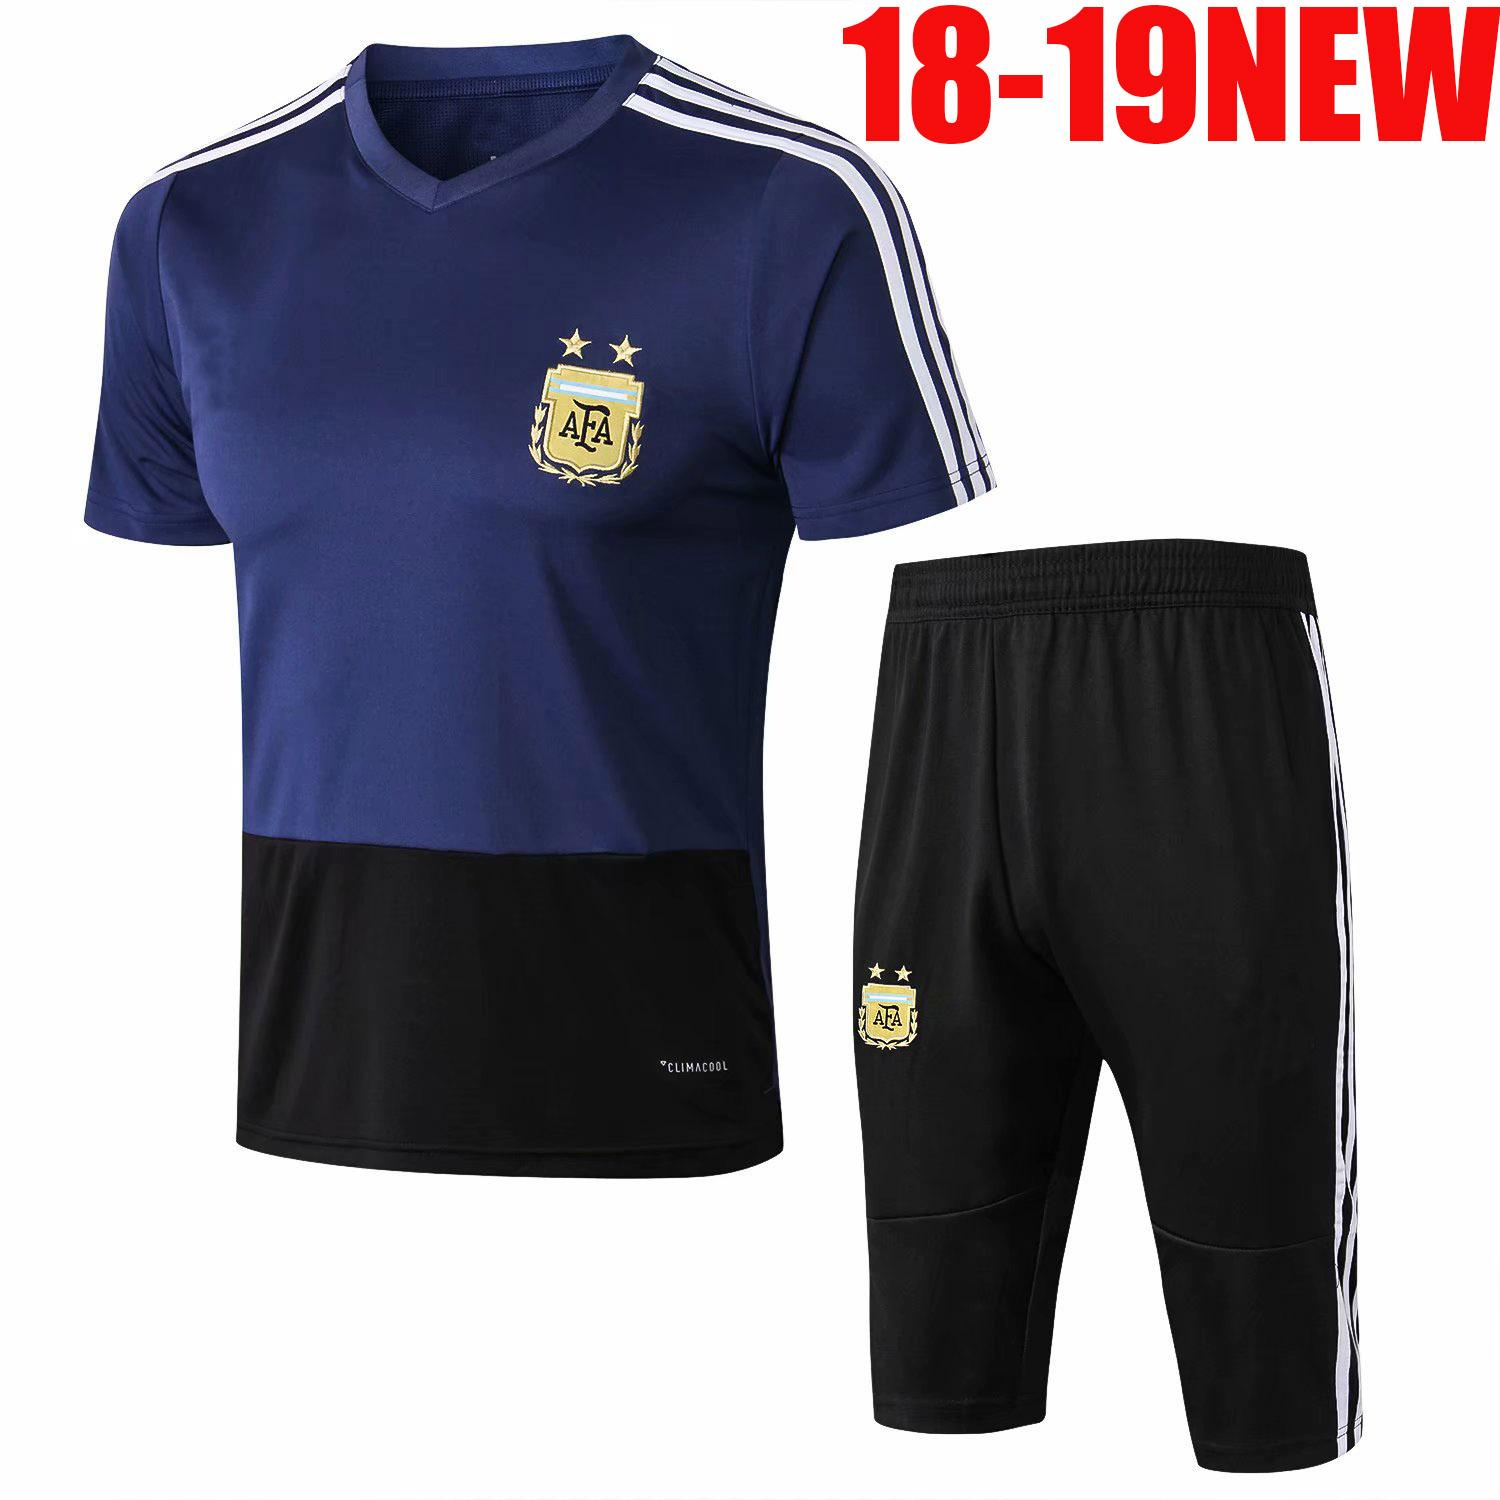 81a183d0fd2 2019 NEW 2018 2019 World Cup Soccer Spain Polo Shirt 18 19 Colombia Belgium  Argentina Custom Adult Football Training Suit From Jerseys aaa